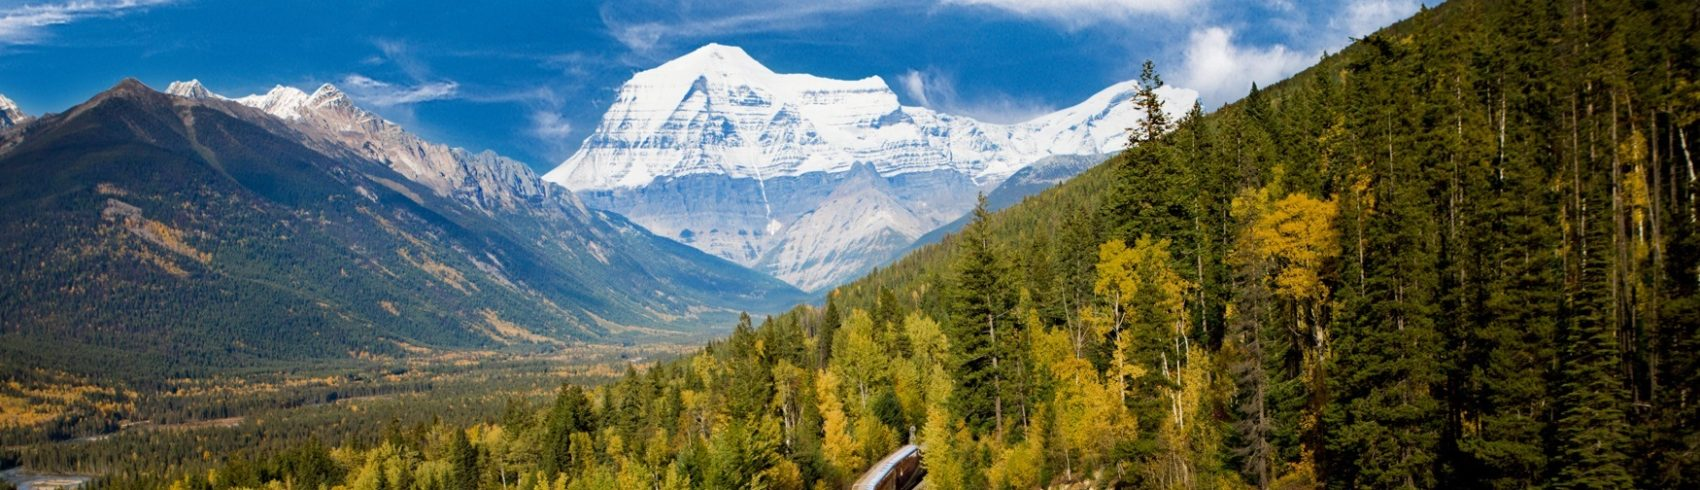 alberta Canadian Rockies holidays train